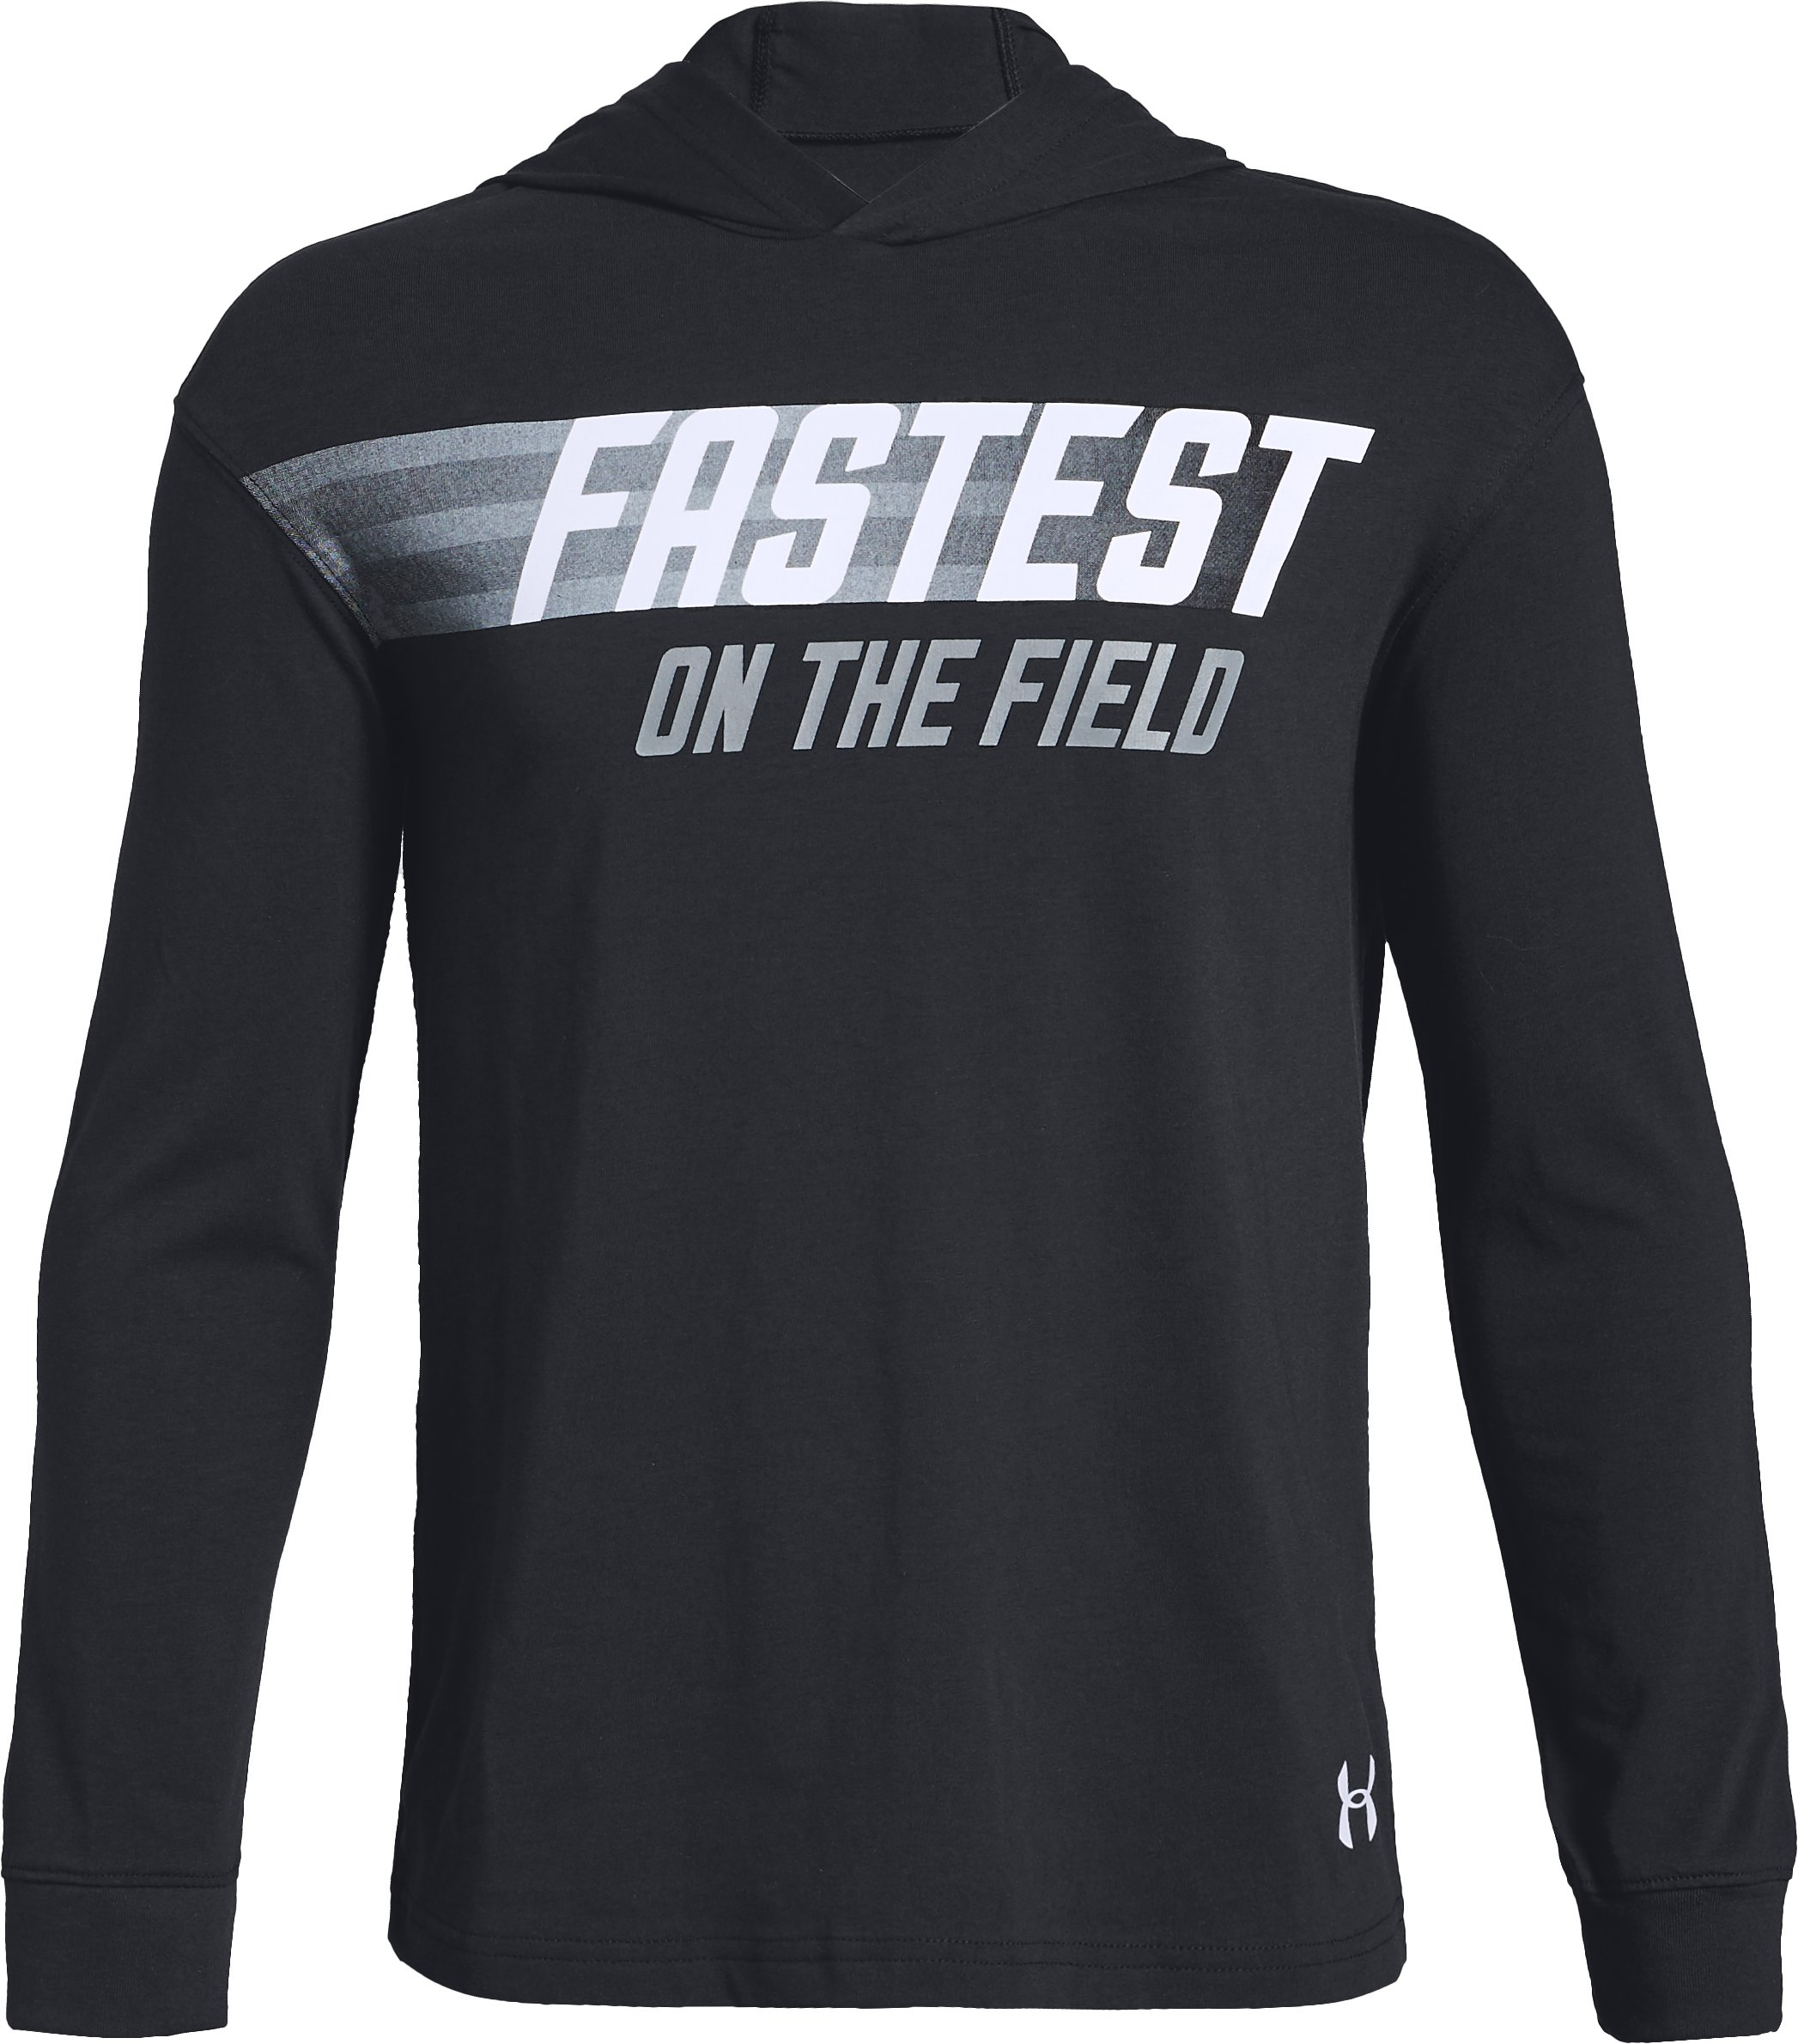 Boys' UA 'Fastest' Graphic Hoodie, Black